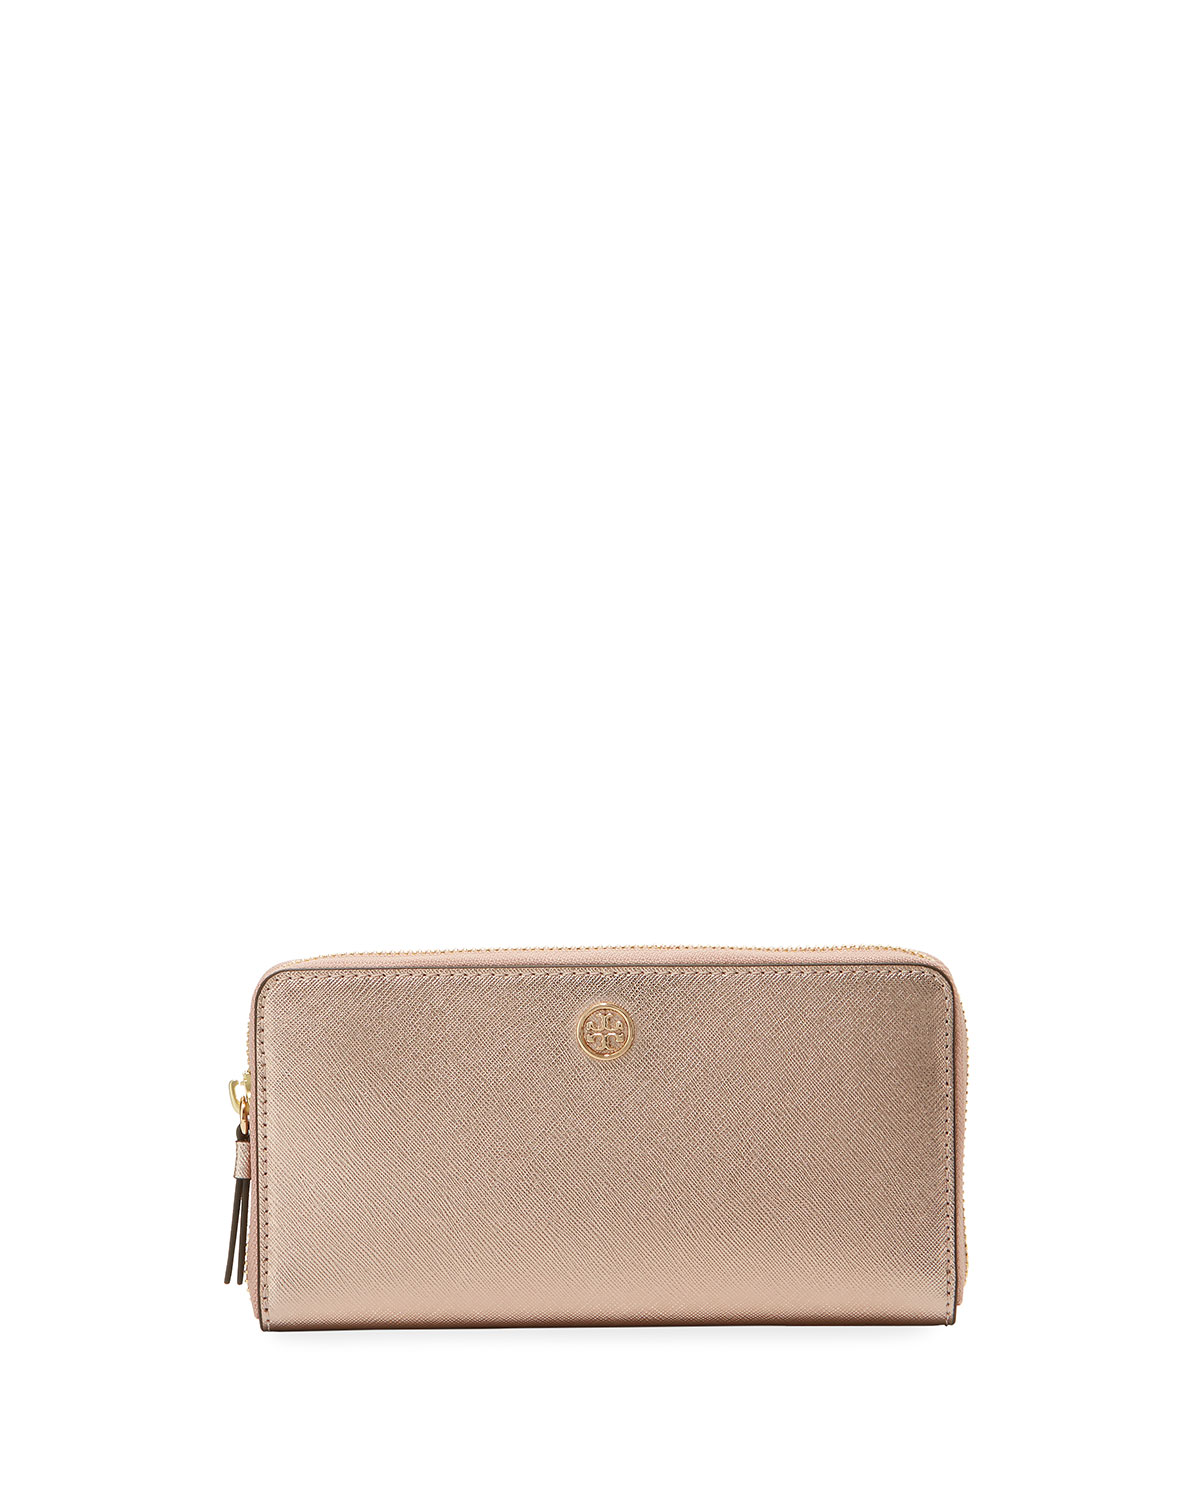 d855be07491 Tory Burch Robinson Metallic Leather Continental Zip Wallet